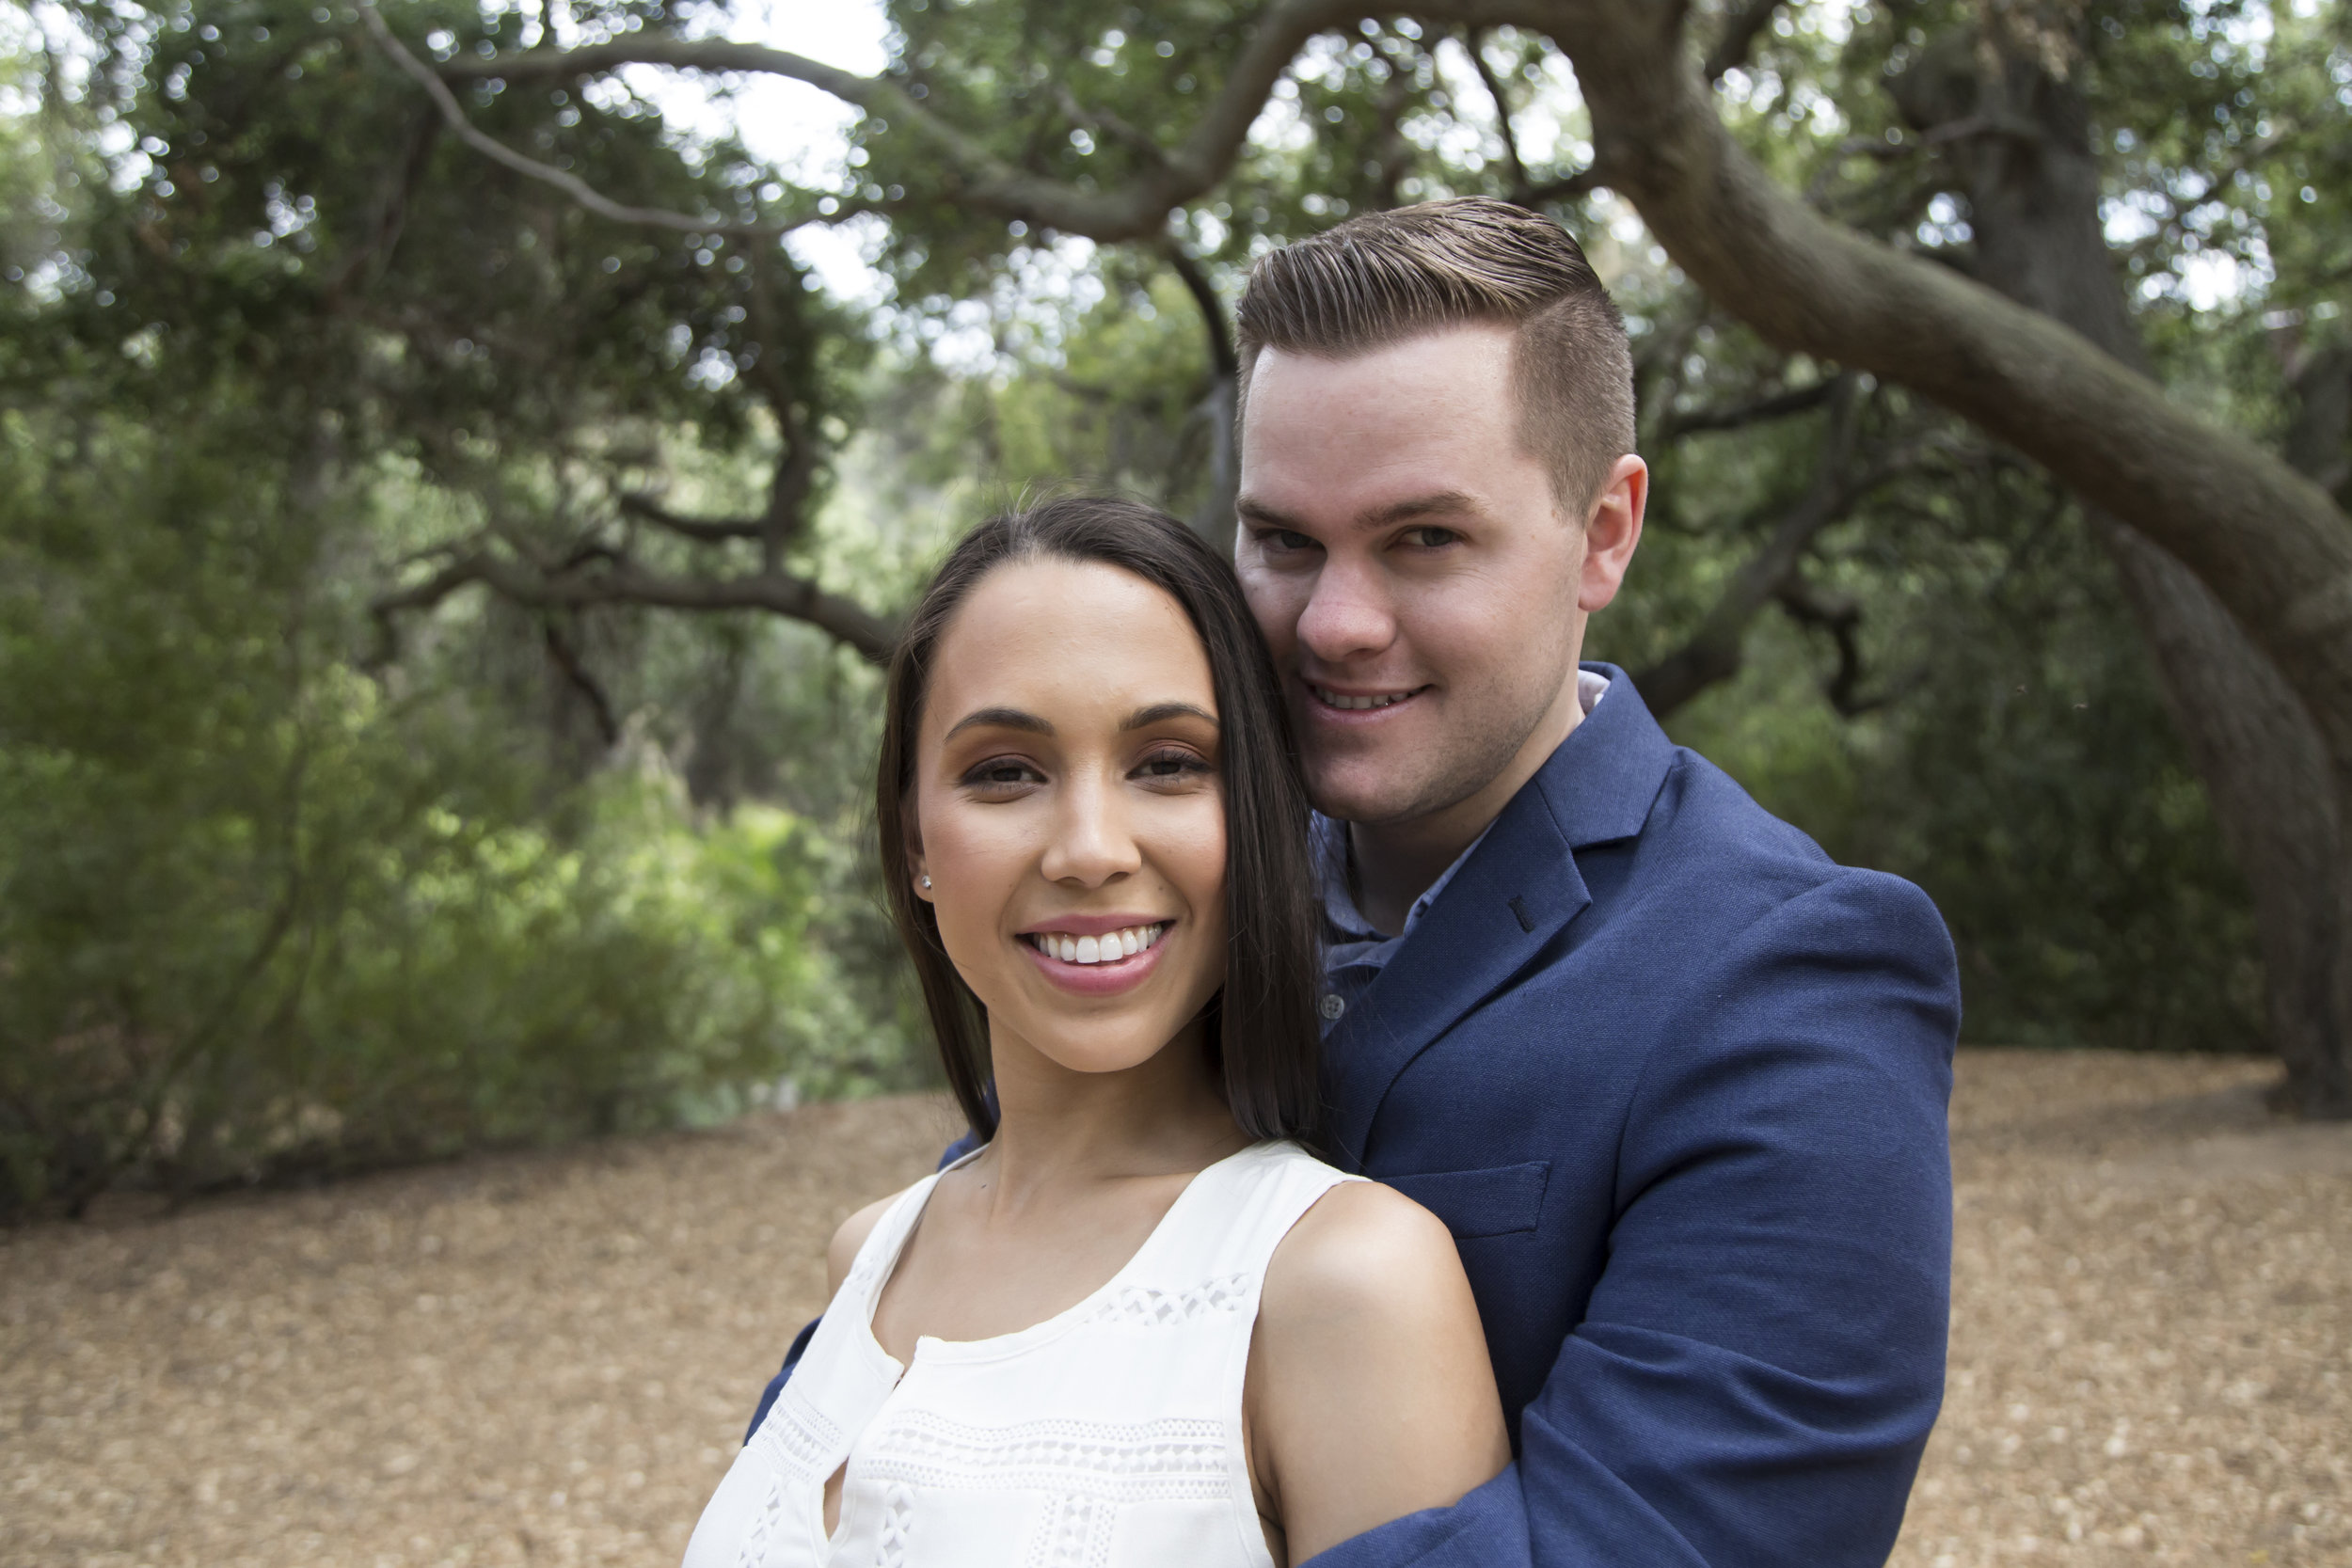 Oak Canyon Nature Center Engagement Photos_Roxanne & Ian-0768.jpg